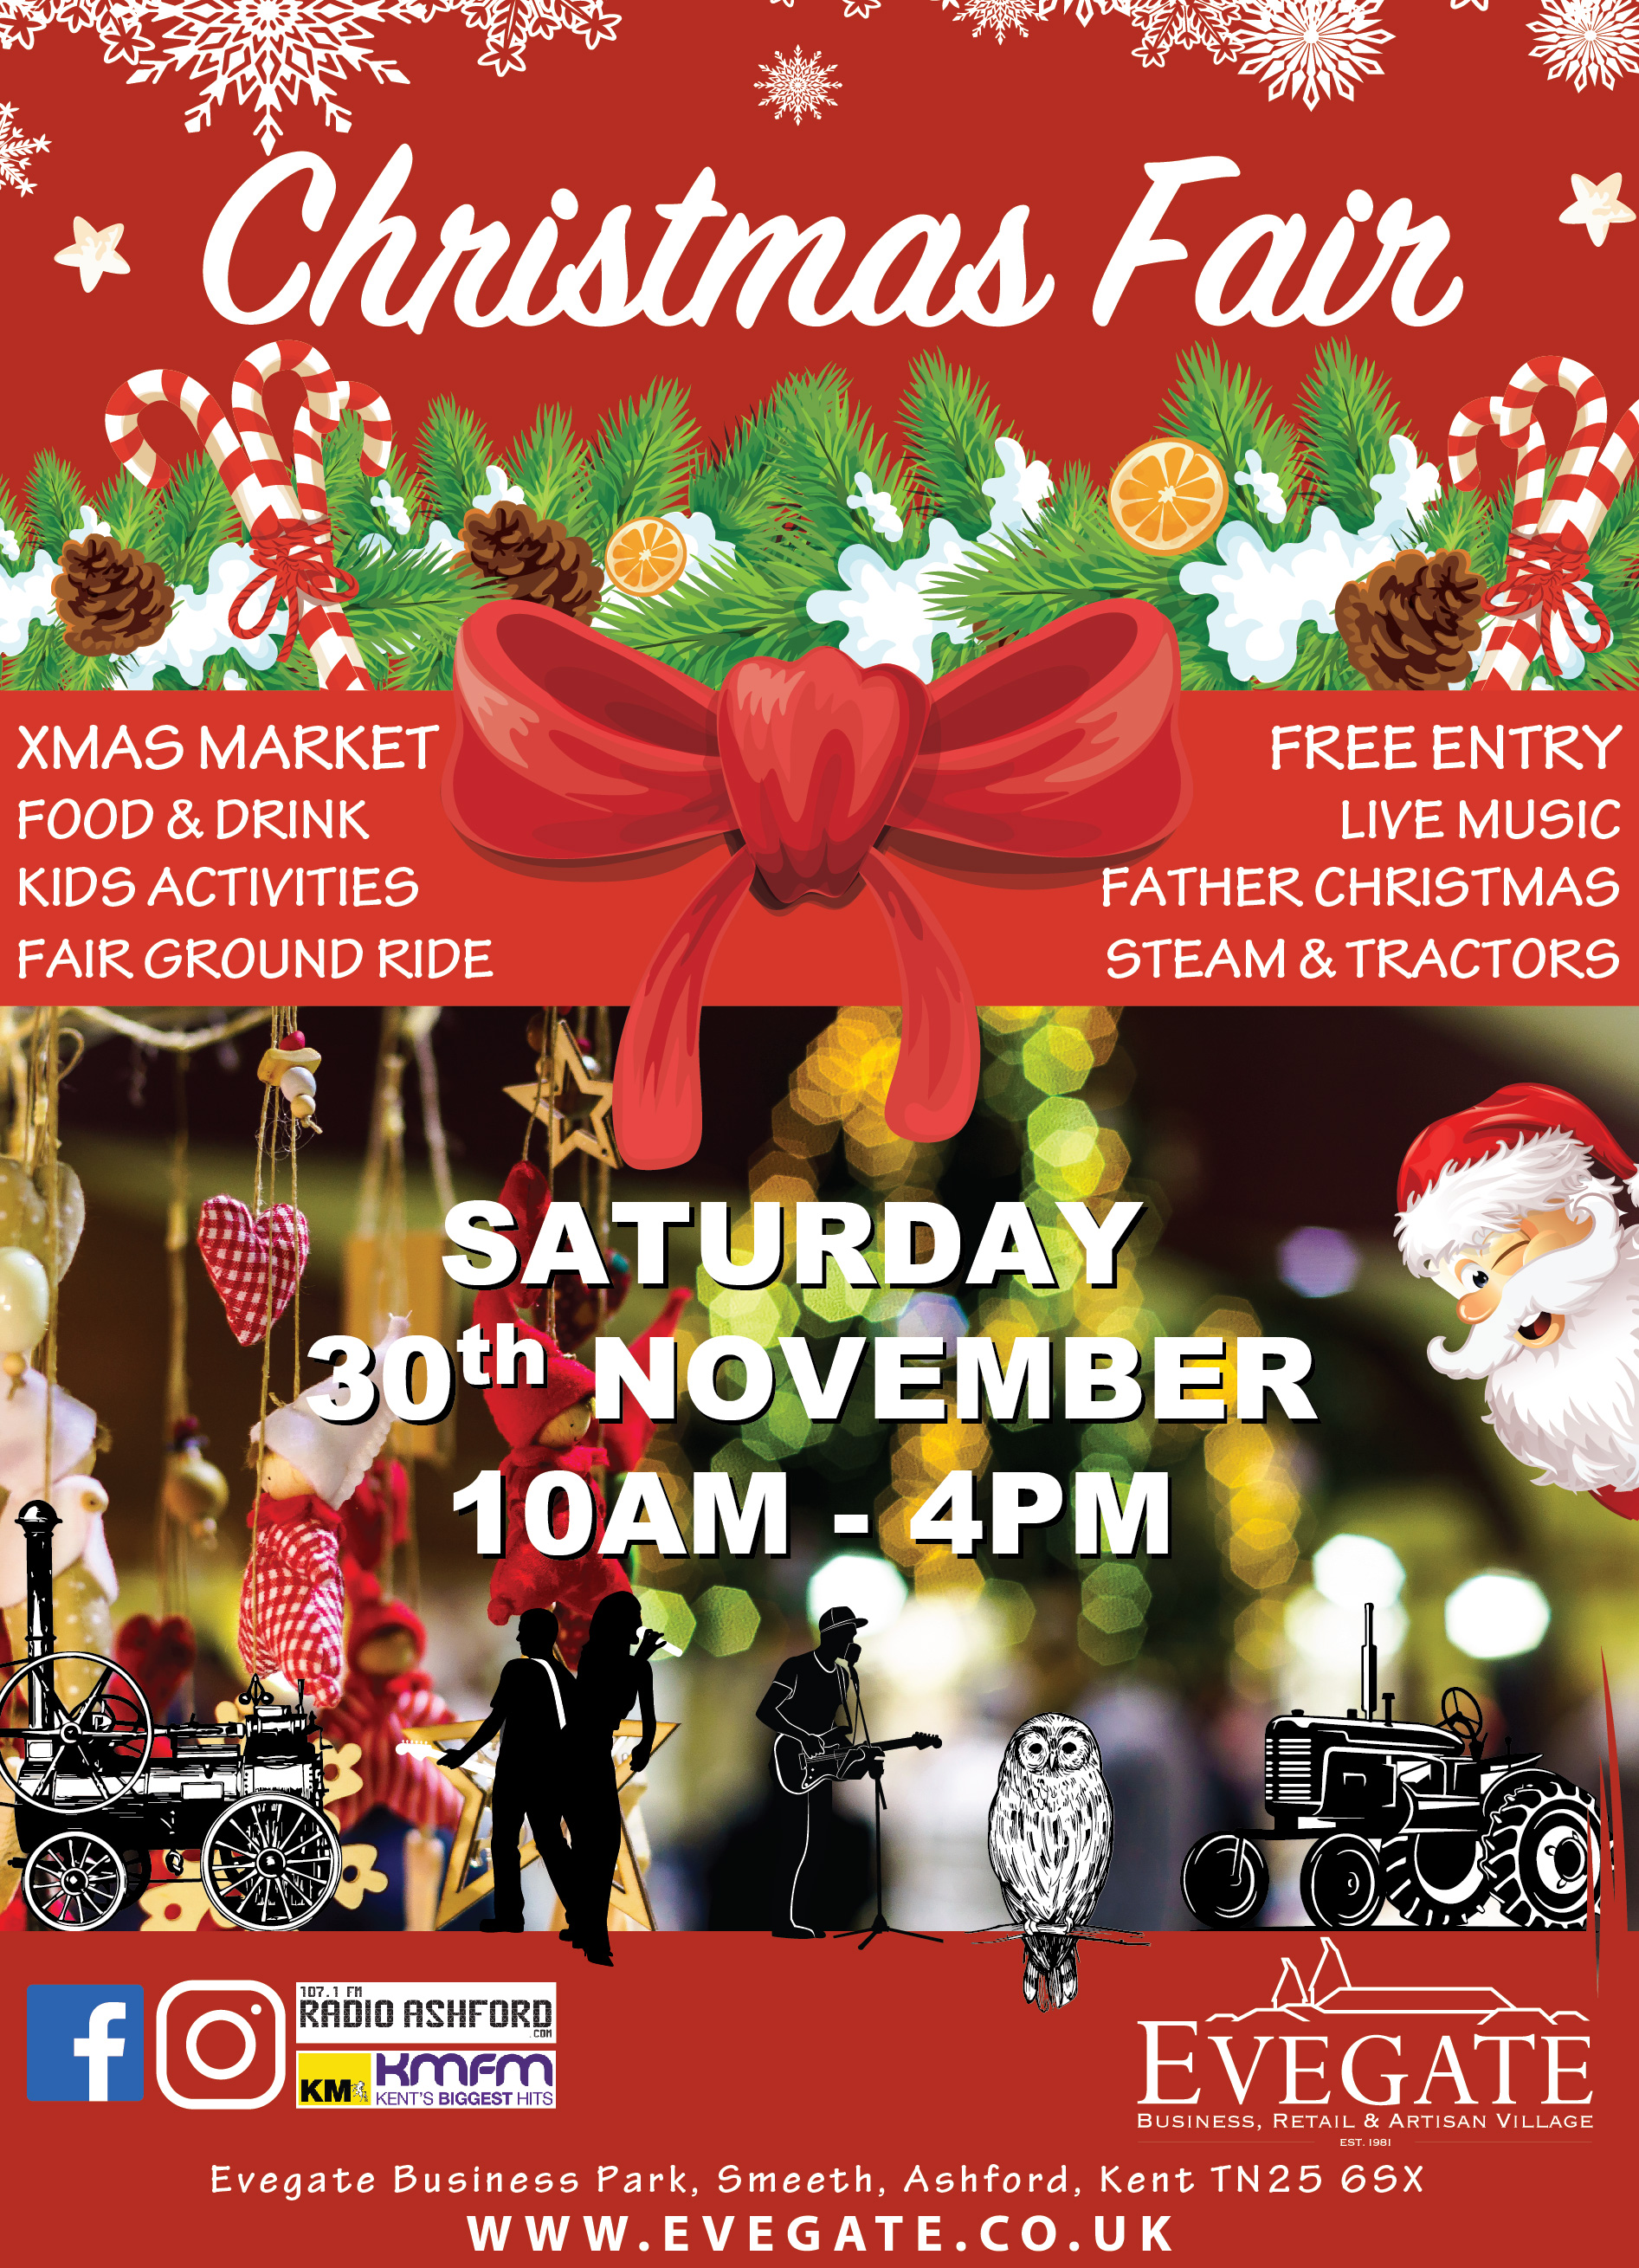 Christmas Fair – Saturday 30th November 2019